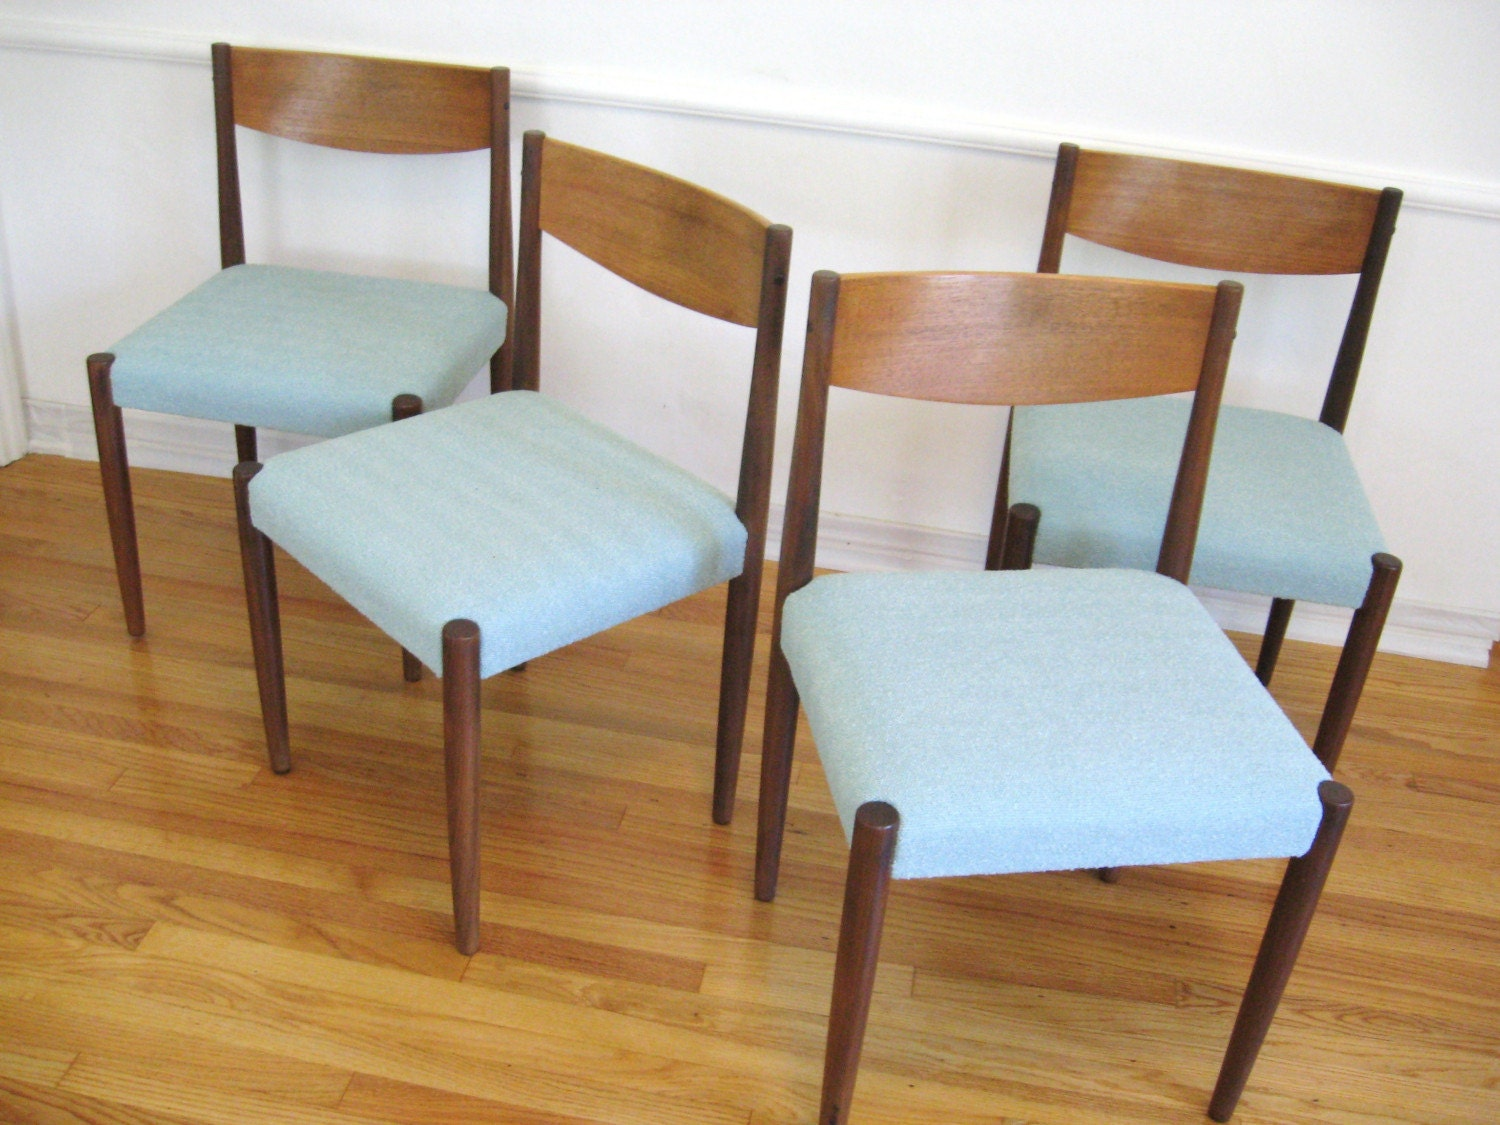 60s danish modern teak wood vintage dining chairs by for Designer chairs from the 60s